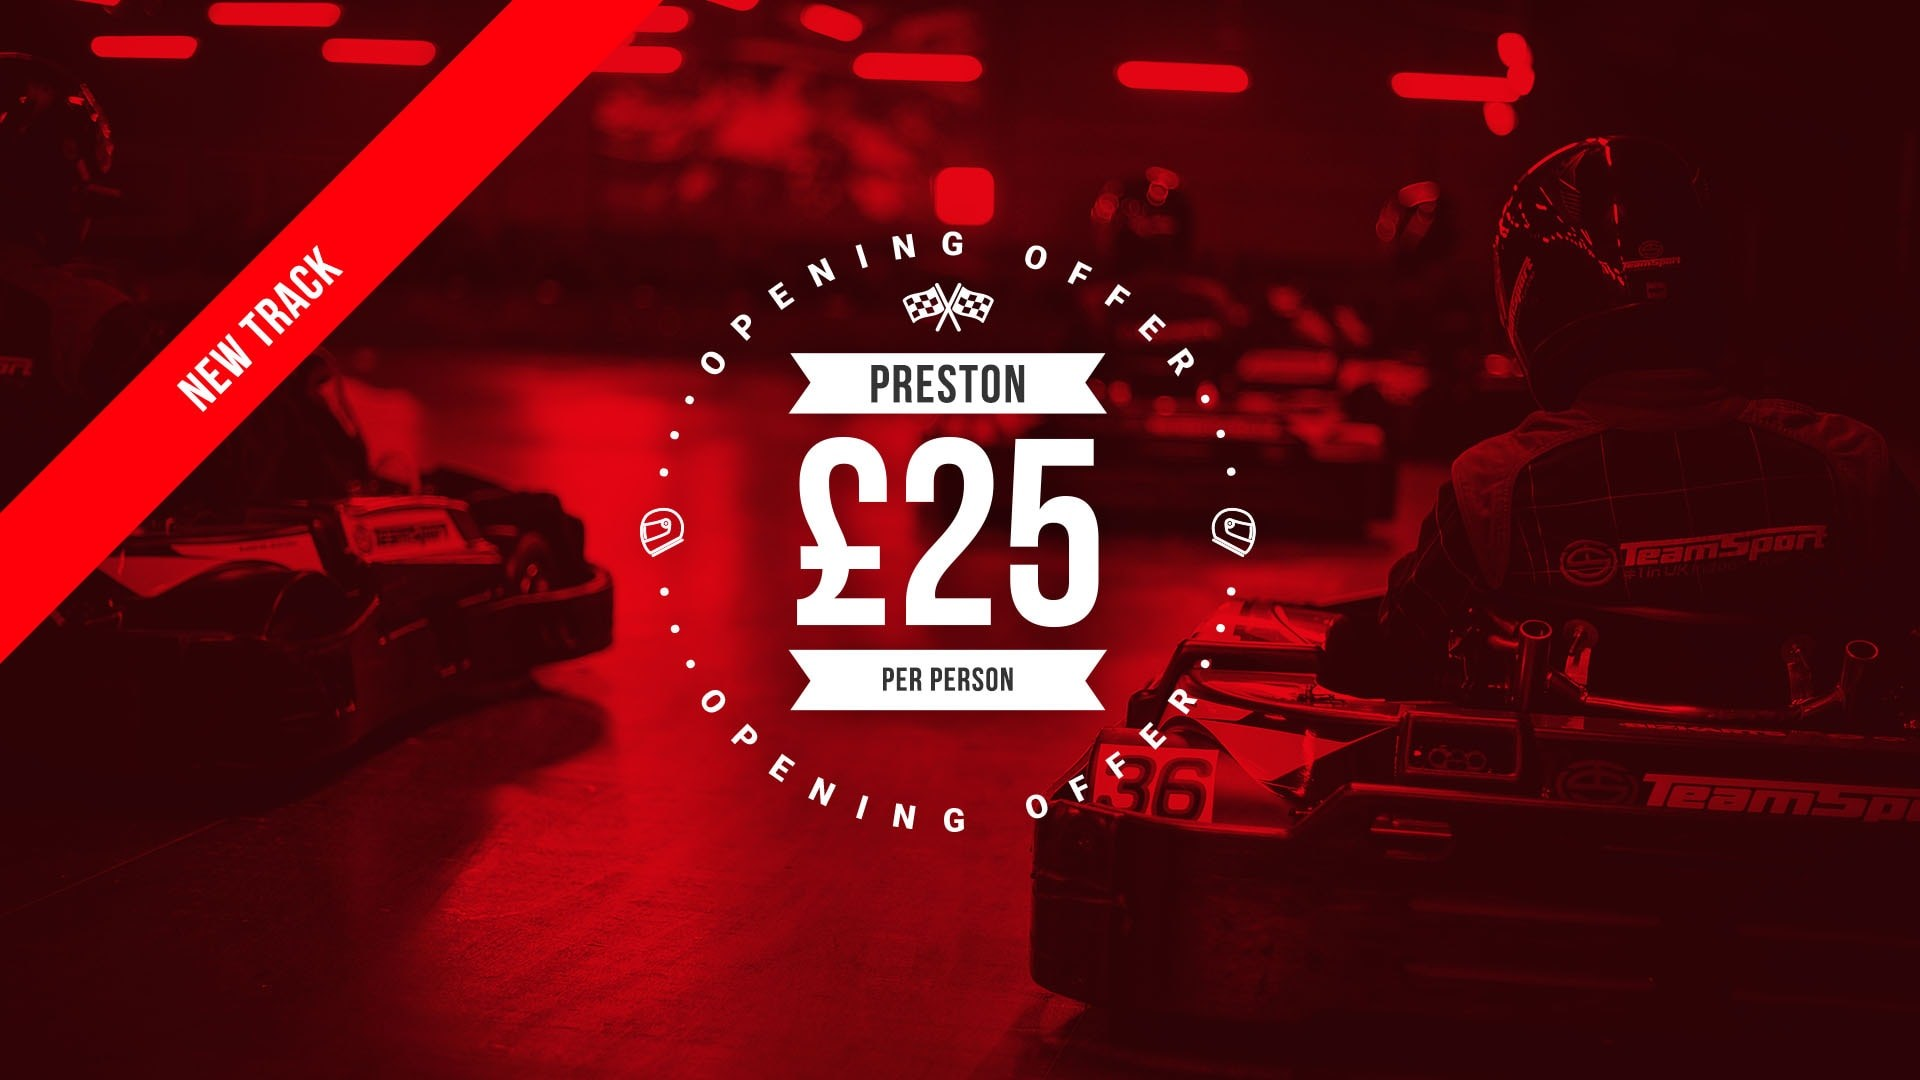 UNBEATABLE GO KARTING OFFERS - Preston Opening Offer